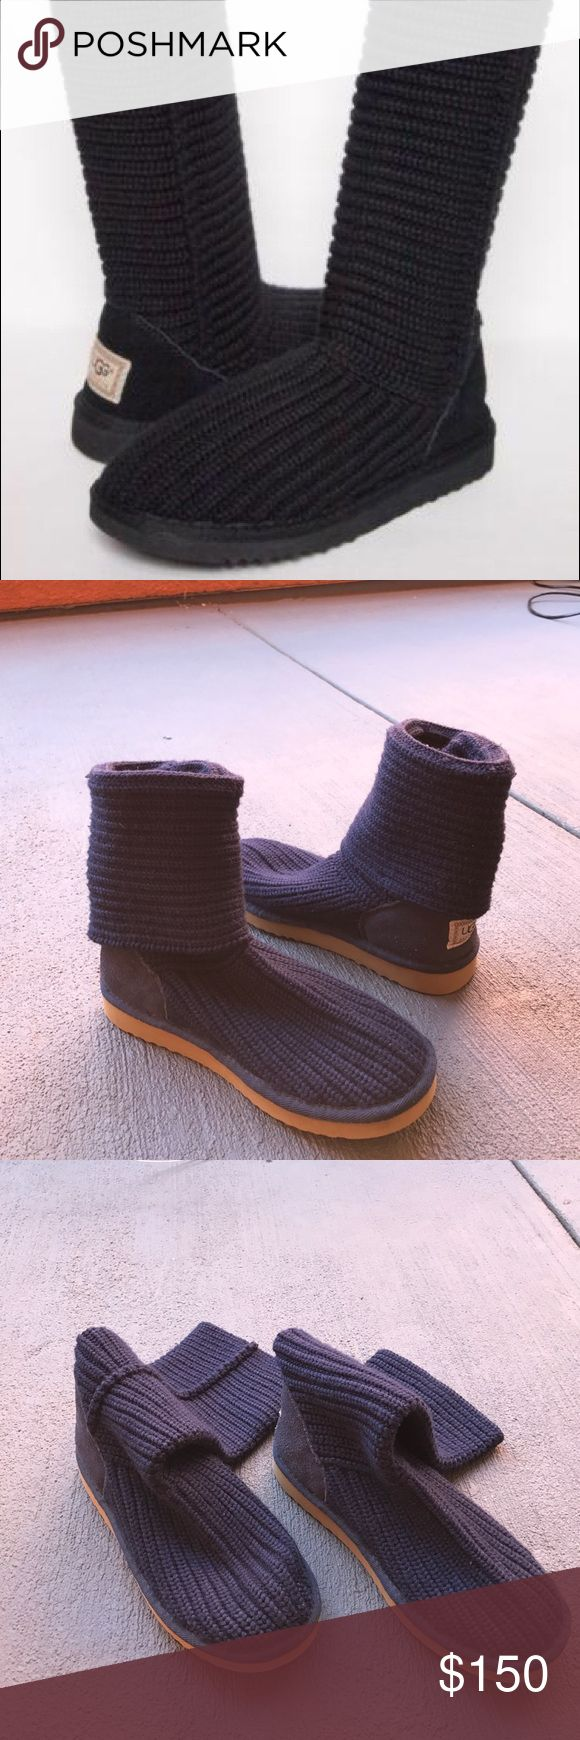 Blue uggs ⭐NWOT⭐SMOKE/PET FREE HOME⭐ tall style uggs. Knit style like this is no longer produced. Women's. Never worn. Couple marks shown all from storage. In excellent condition! 100% authentic. UGG Shoes Winter & Rain Boots